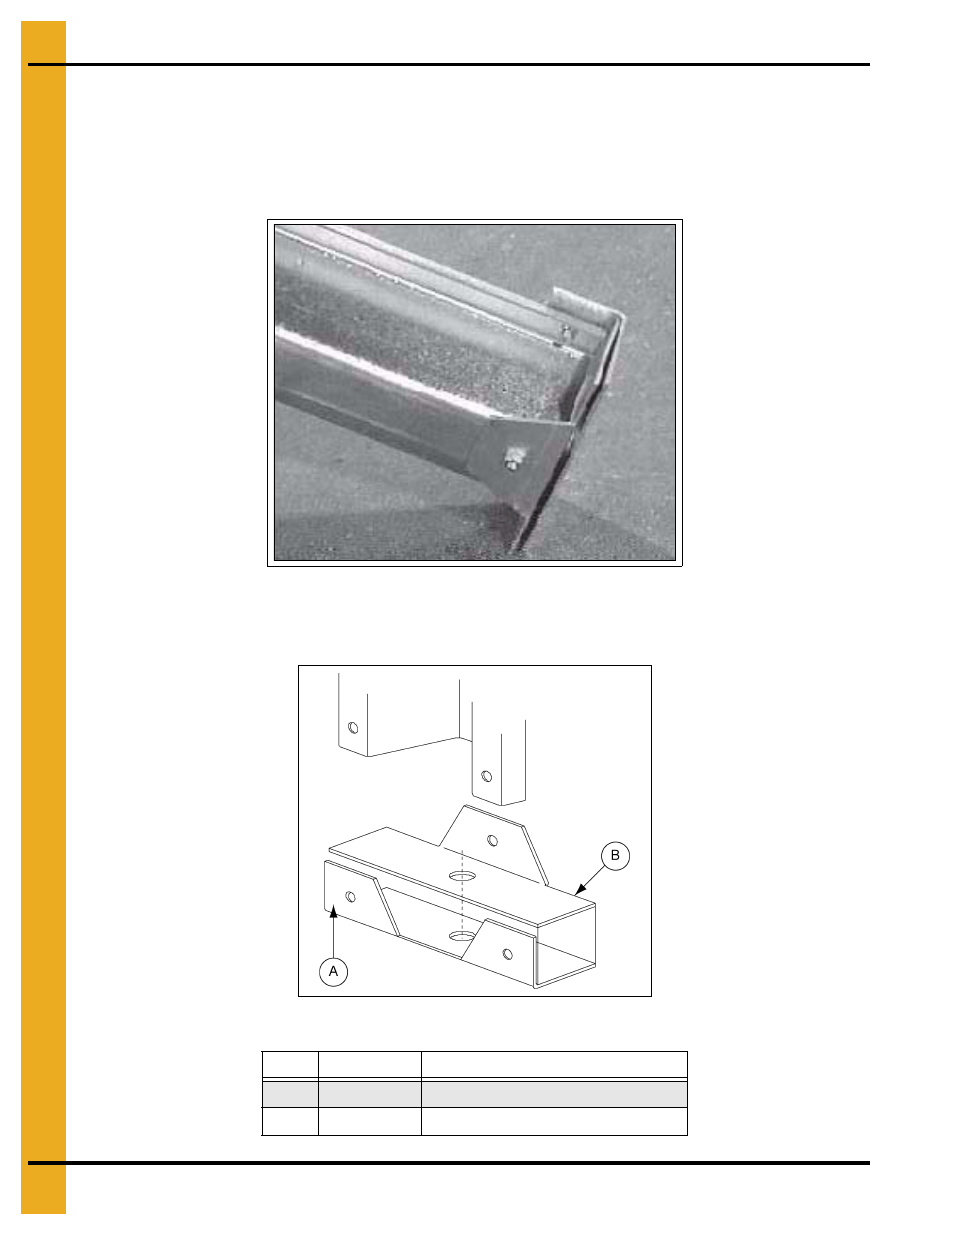 hight resolution of legs and leg bracing chapter 13 legs and leg bracing tank legs and leg braces grain systems tanks pneg 1460 user manual page 68 106